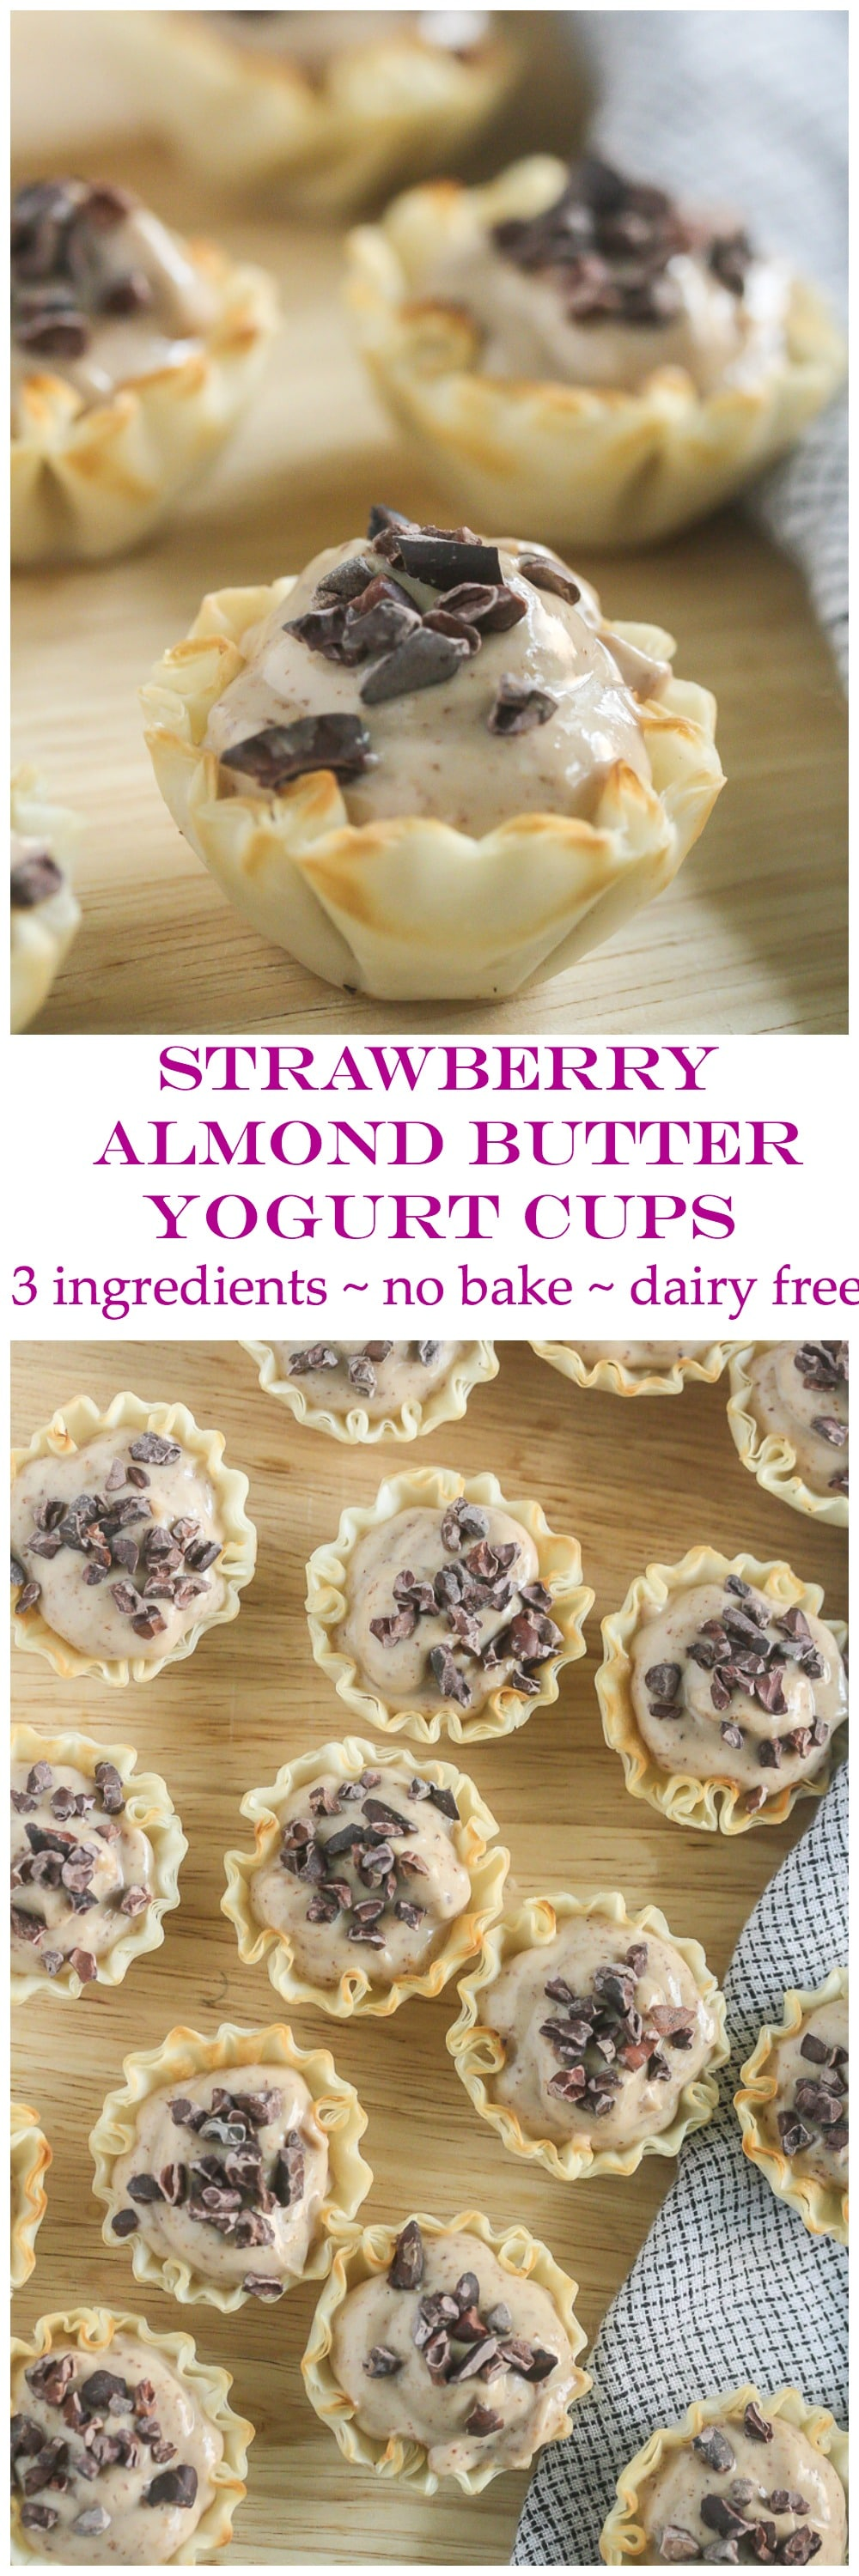 These Strawberry Almond Butter Phyllo Cups contain only 3 ingredients and take 5 minutes to make! #ad #TasteLikeBetter @LoveMySilk